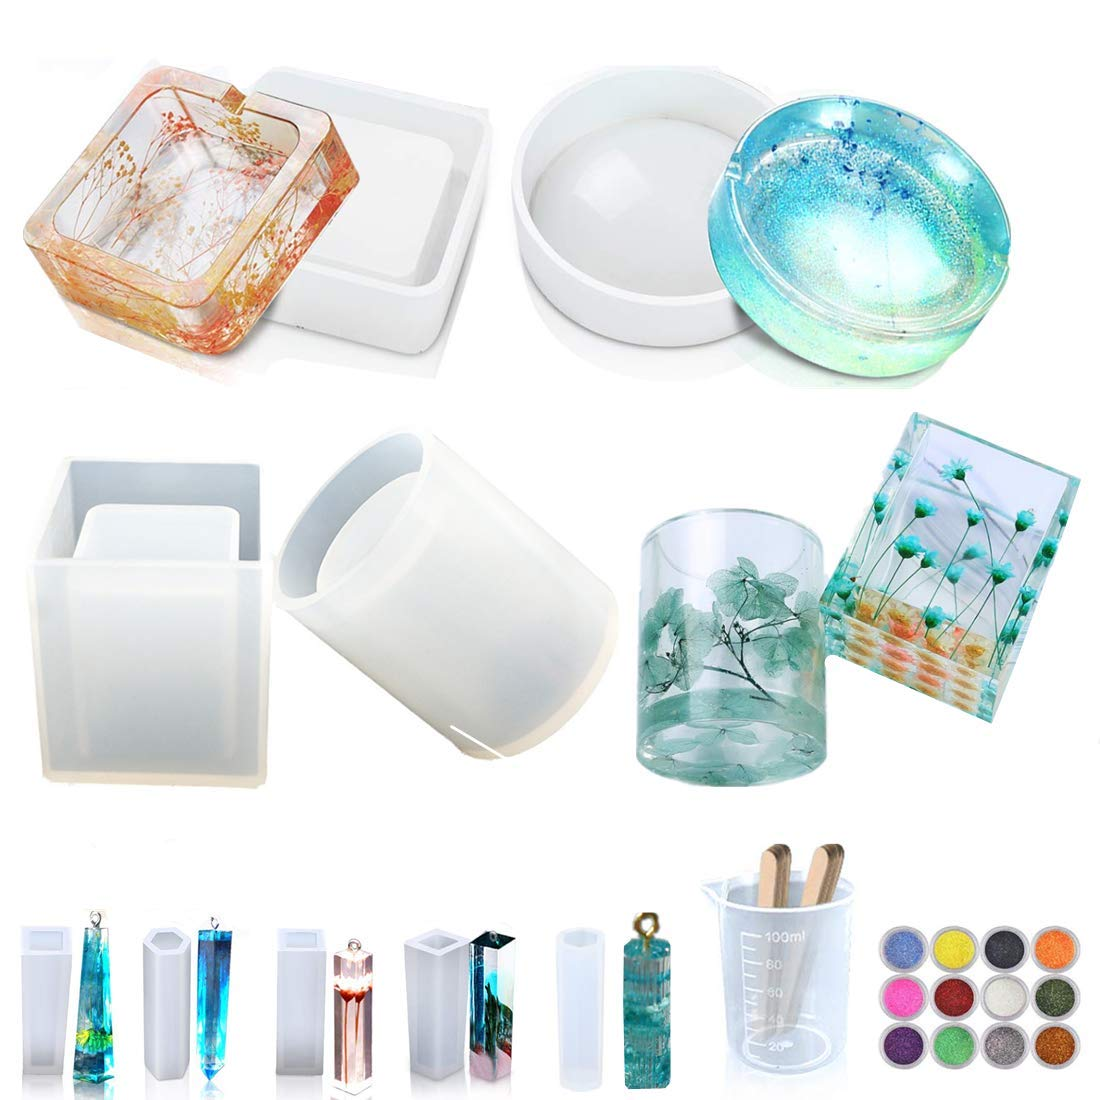 9 Pack DIY Resin Silicone Mold, Resin Ar- Buy Online in Pakistan at  Desertcart